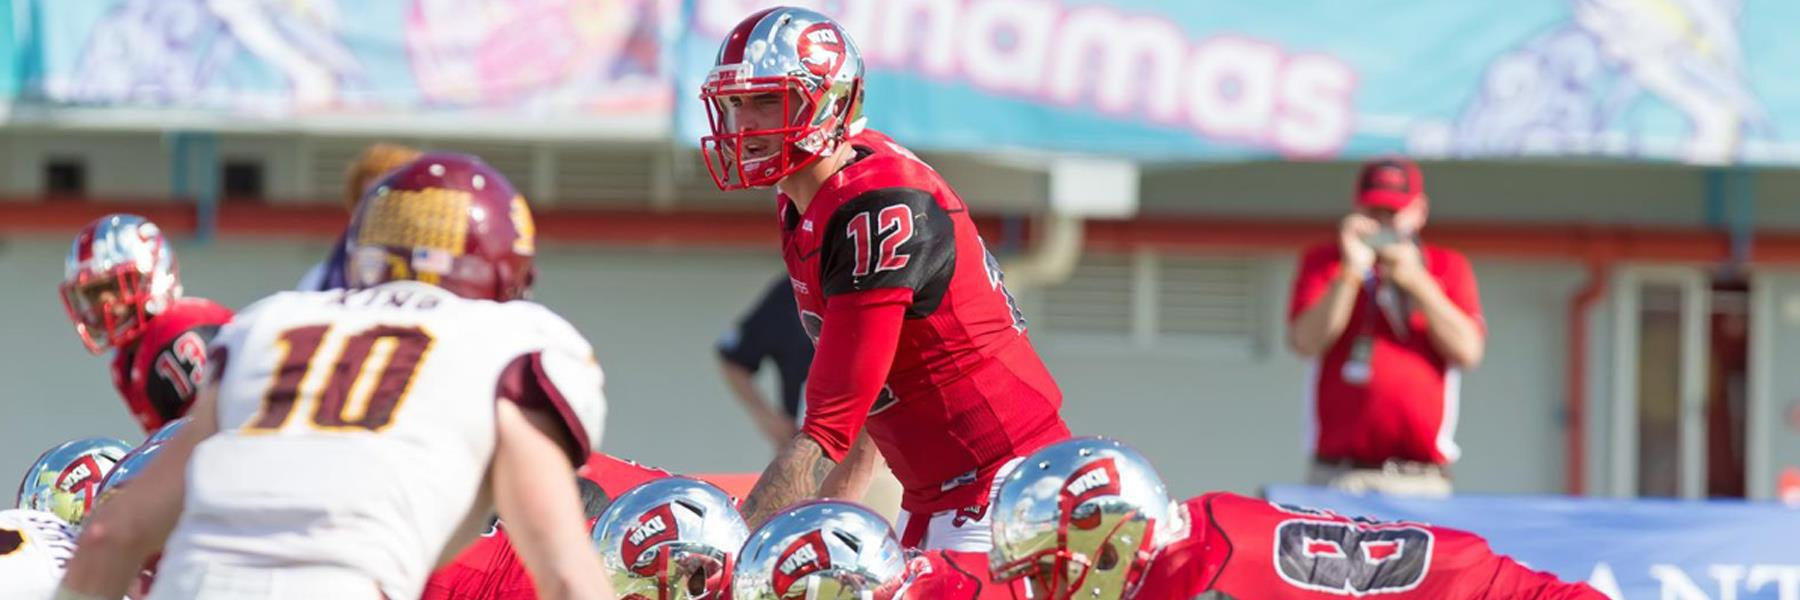 Hilltoppers Announce 2015 Football Schedule and Season Ticket Plans